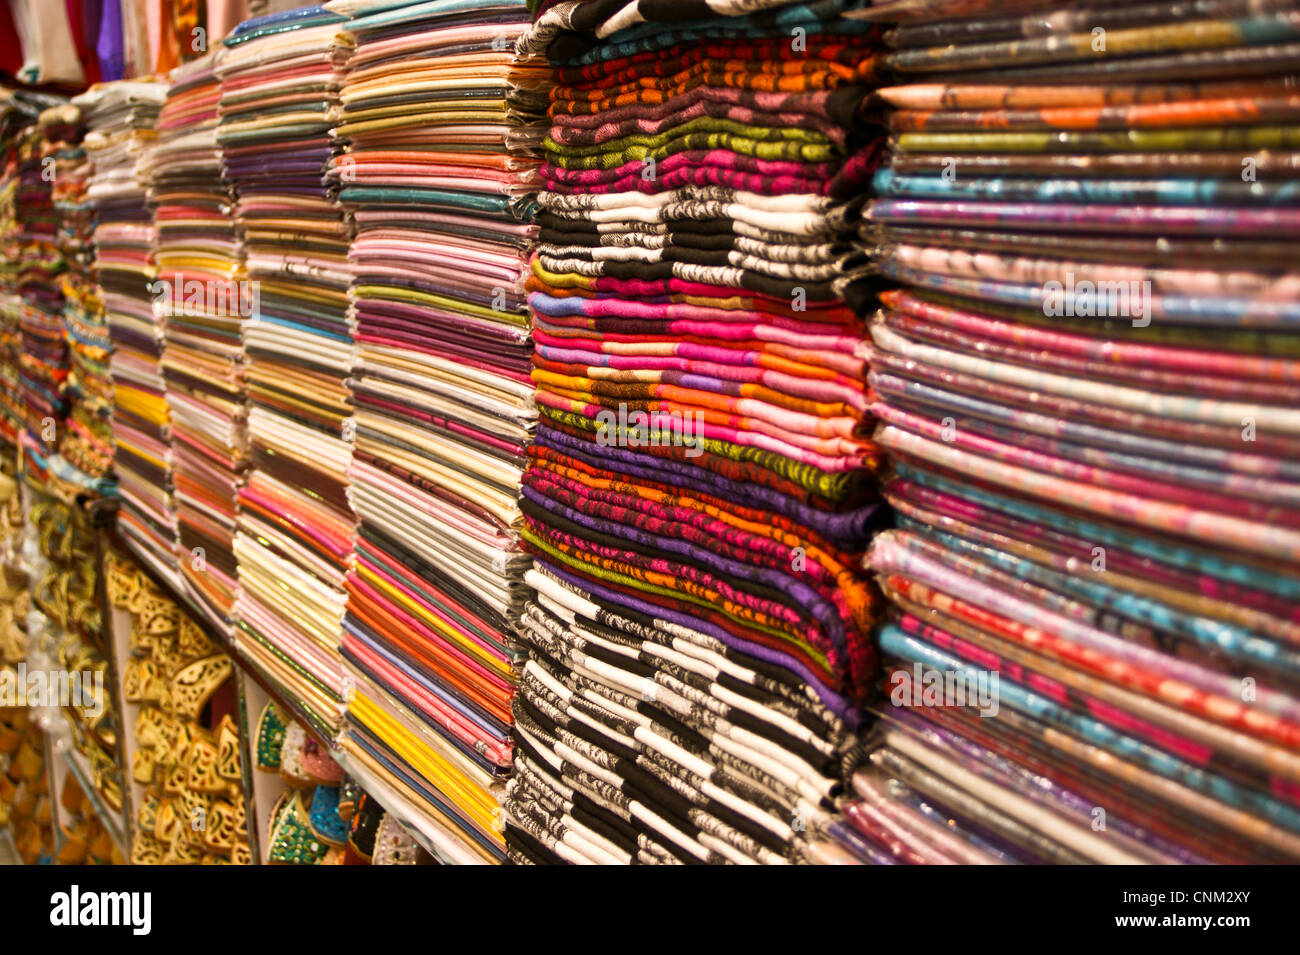 Colourful pashmina scarves in an Indian shop in the Old Souk ...